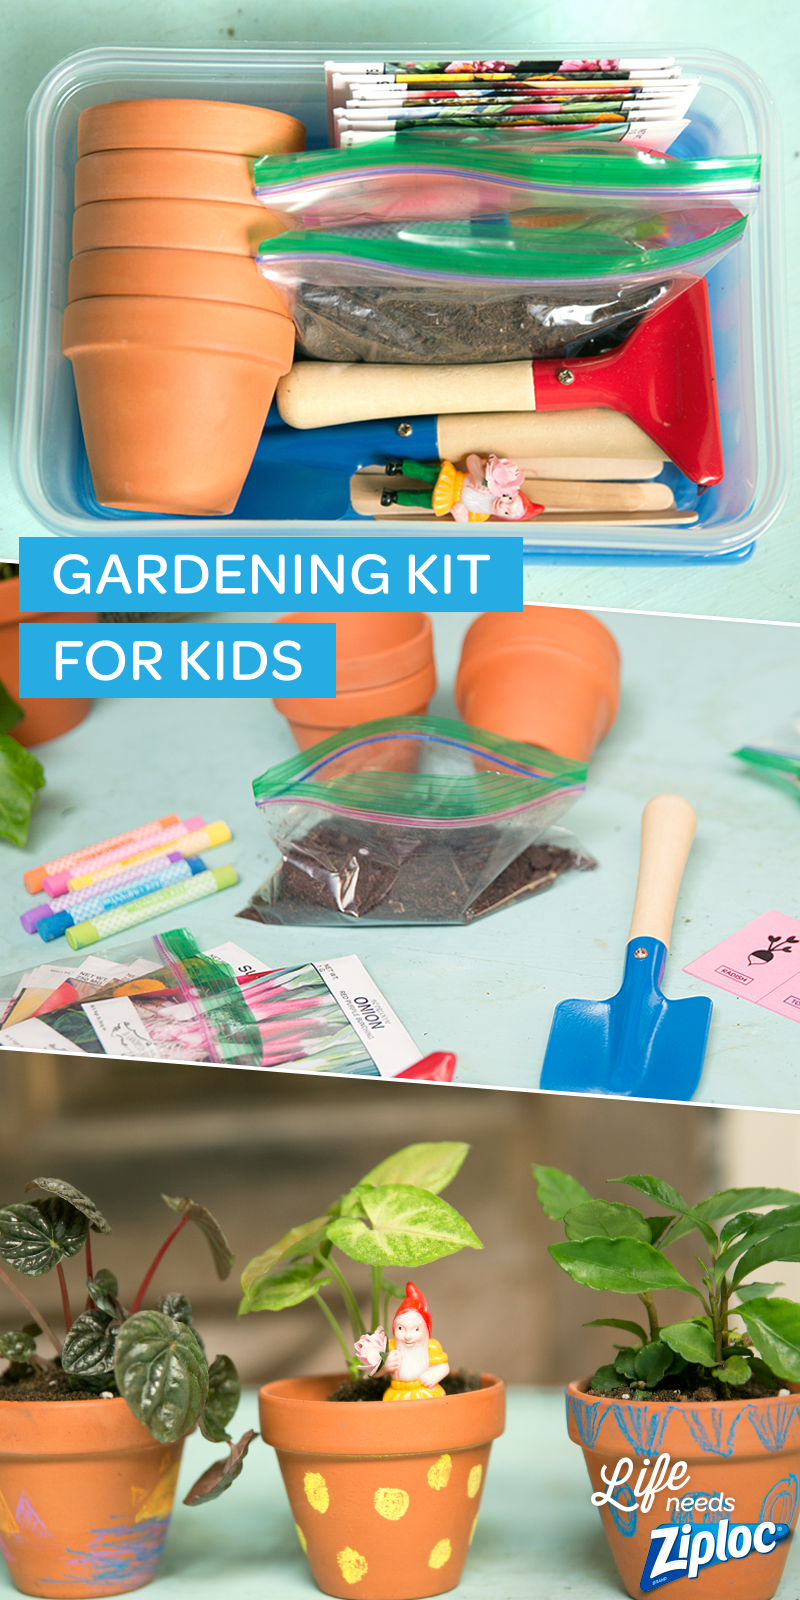 Such A Cute Idea For An Outdoor Playdate Put Together Individual